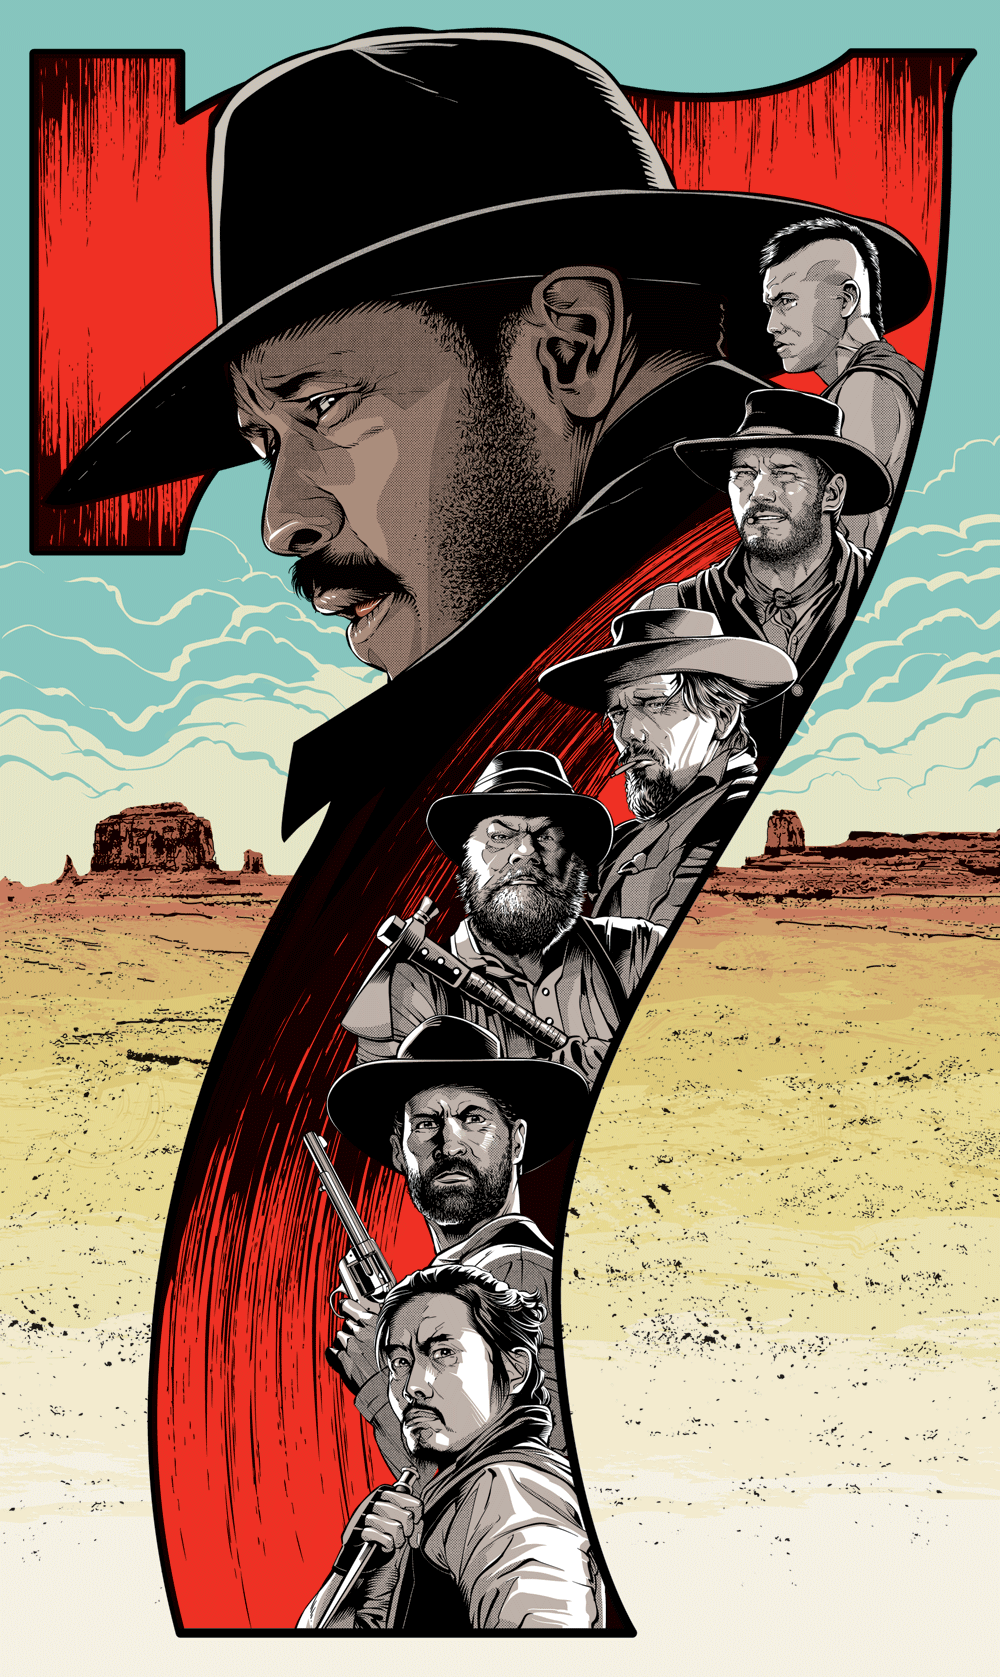 the magnificent seven poster created by cristiano siqueira